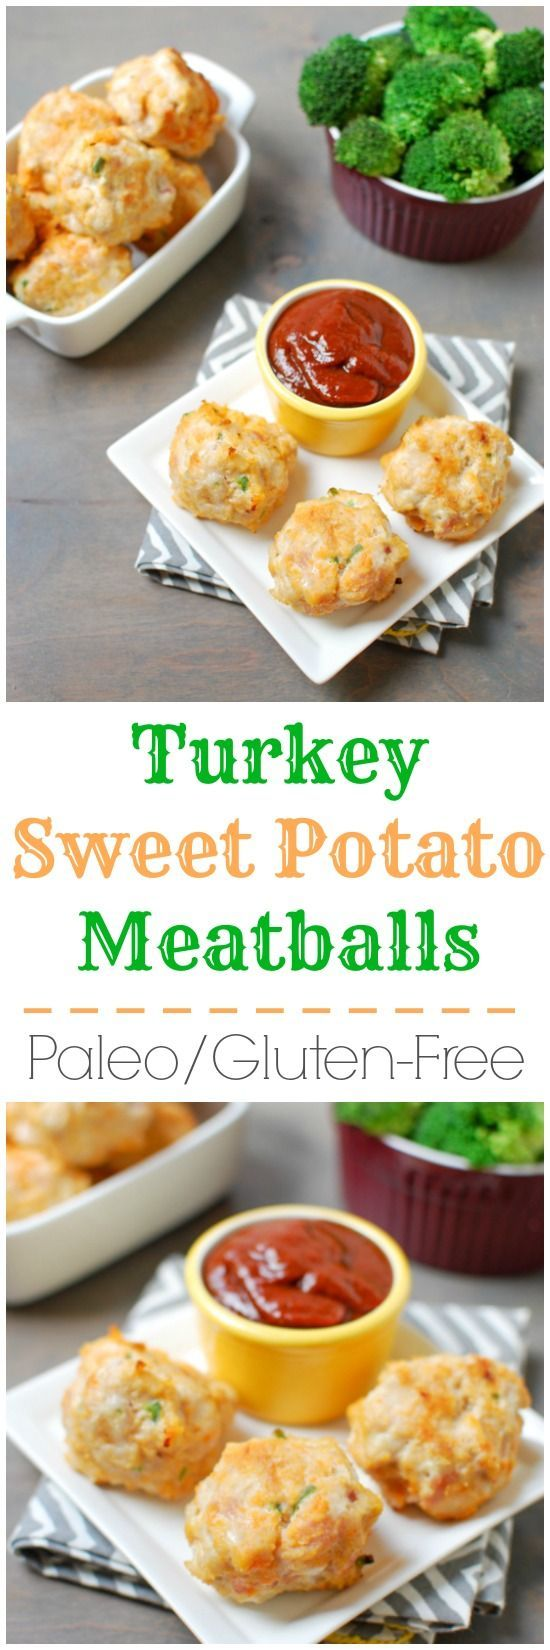 This recipe for Paleo Turkey Sweet Potato Meatballs are spicy, flavorful and delicious. Enjoy them plain, with a dipping sauce or over noodles for dinner.